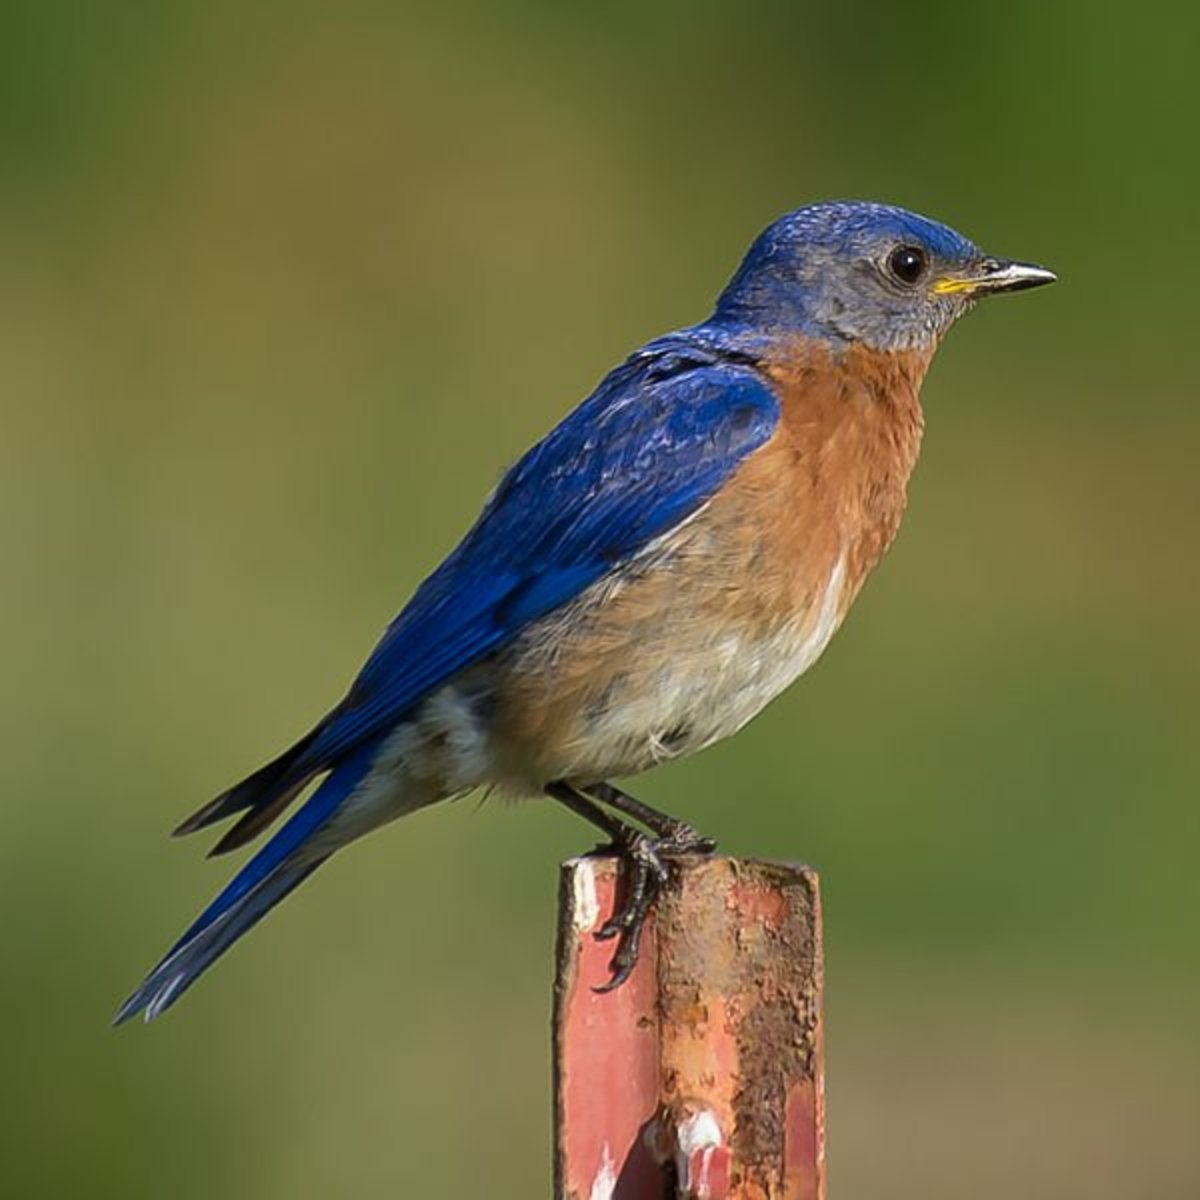 Eastern bluebirds are one common thrush found in NC.